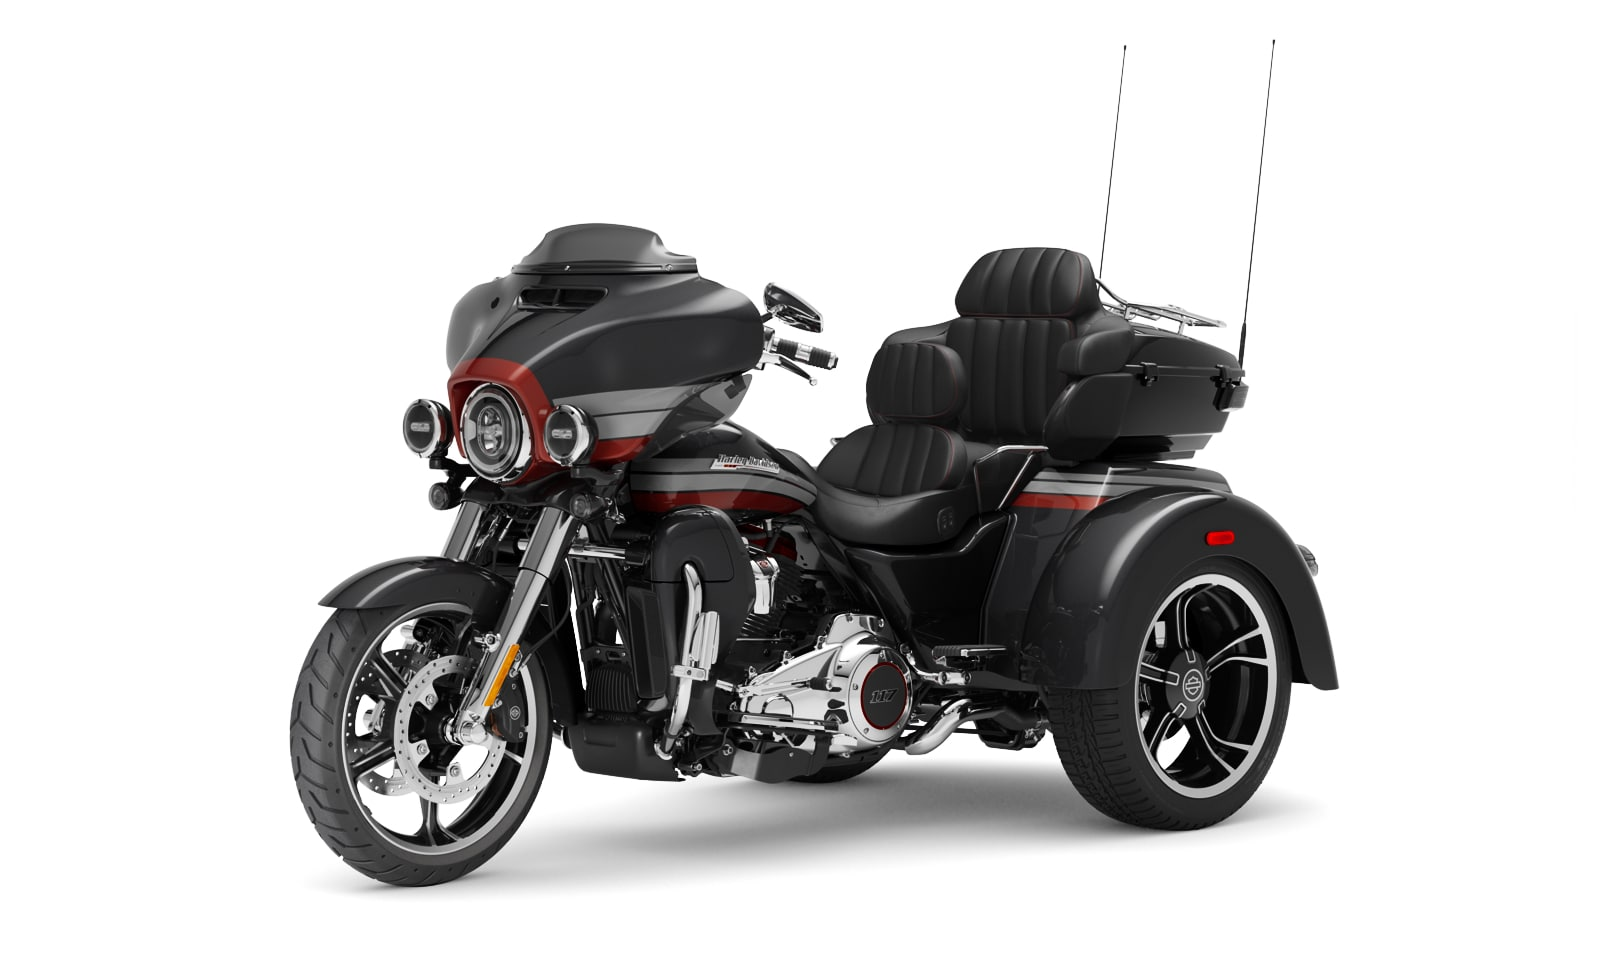 2020 Harley Davidson Cvo Tri Glide Us Market Price Announced Drivemag Riders